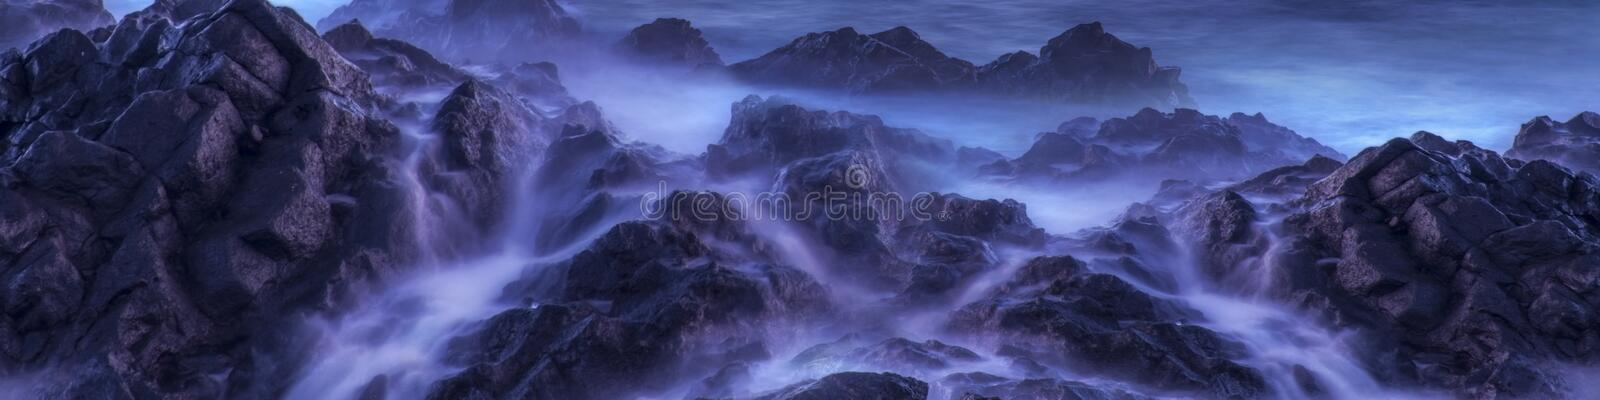 Water with rock nature photo with long exposure fog effect.Panorama or banner abstract color ocean background royalty free stock images